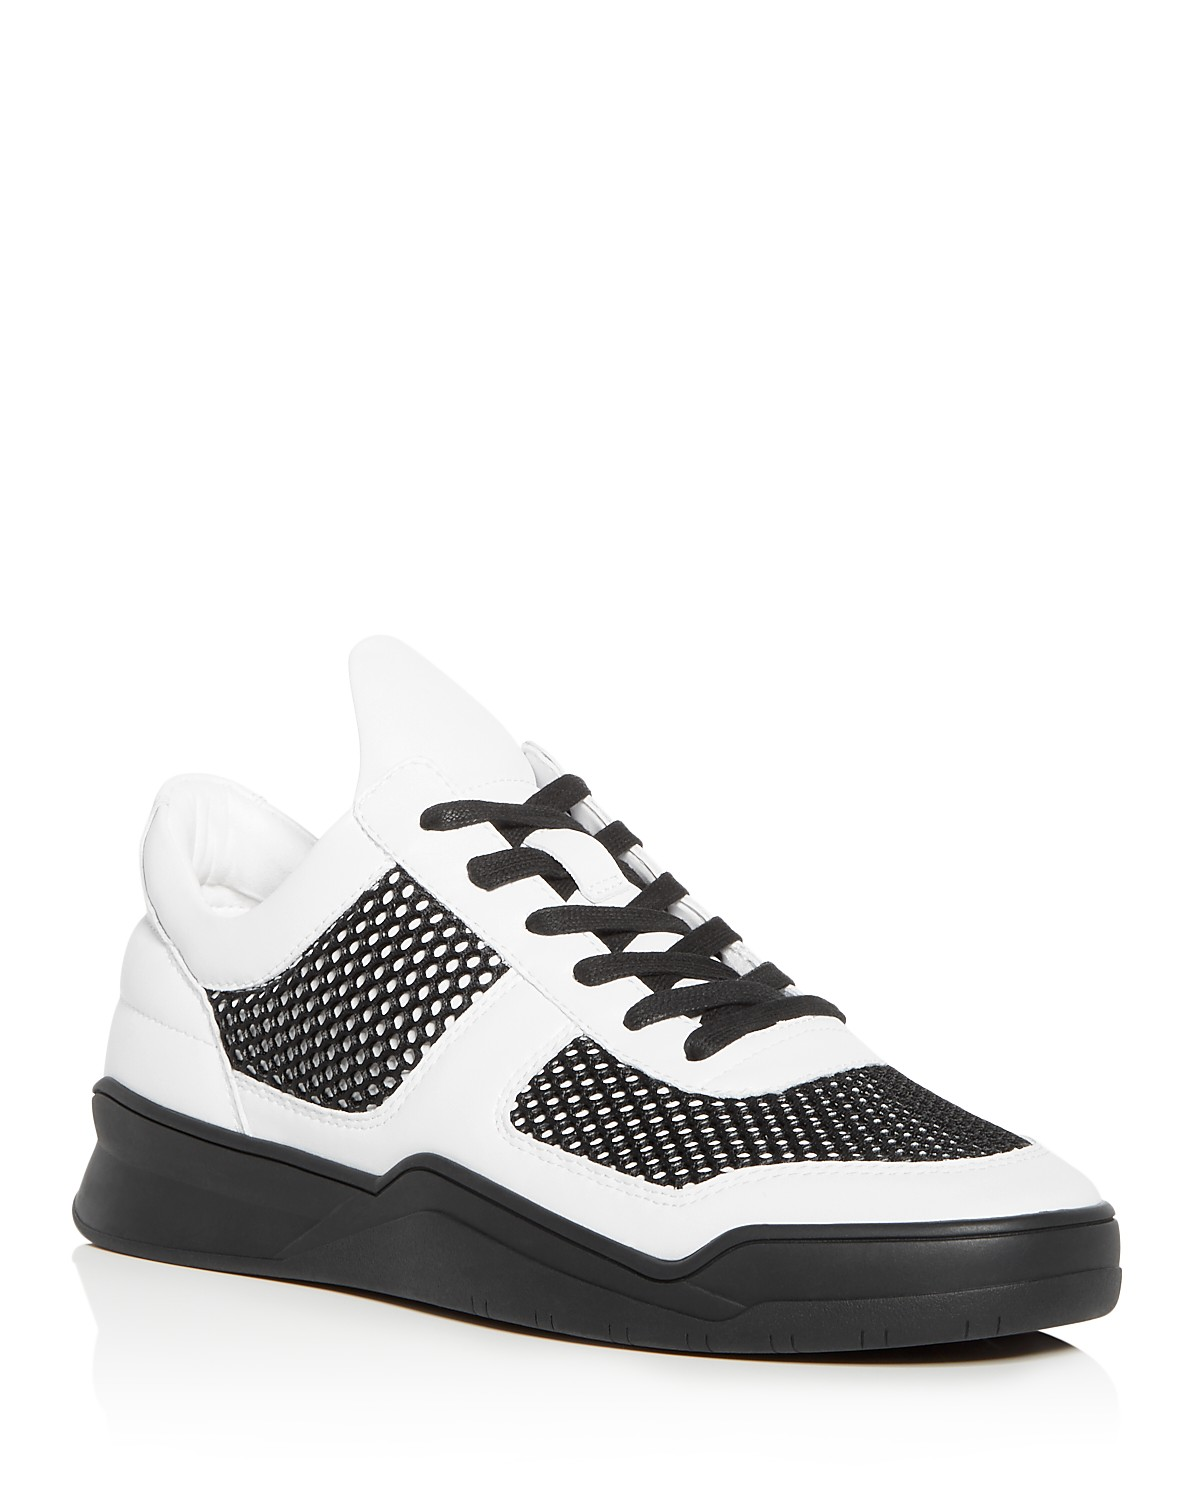 Karl Lagerfeld Men's Leather Lace Up Sneakers iVK7yKZip0